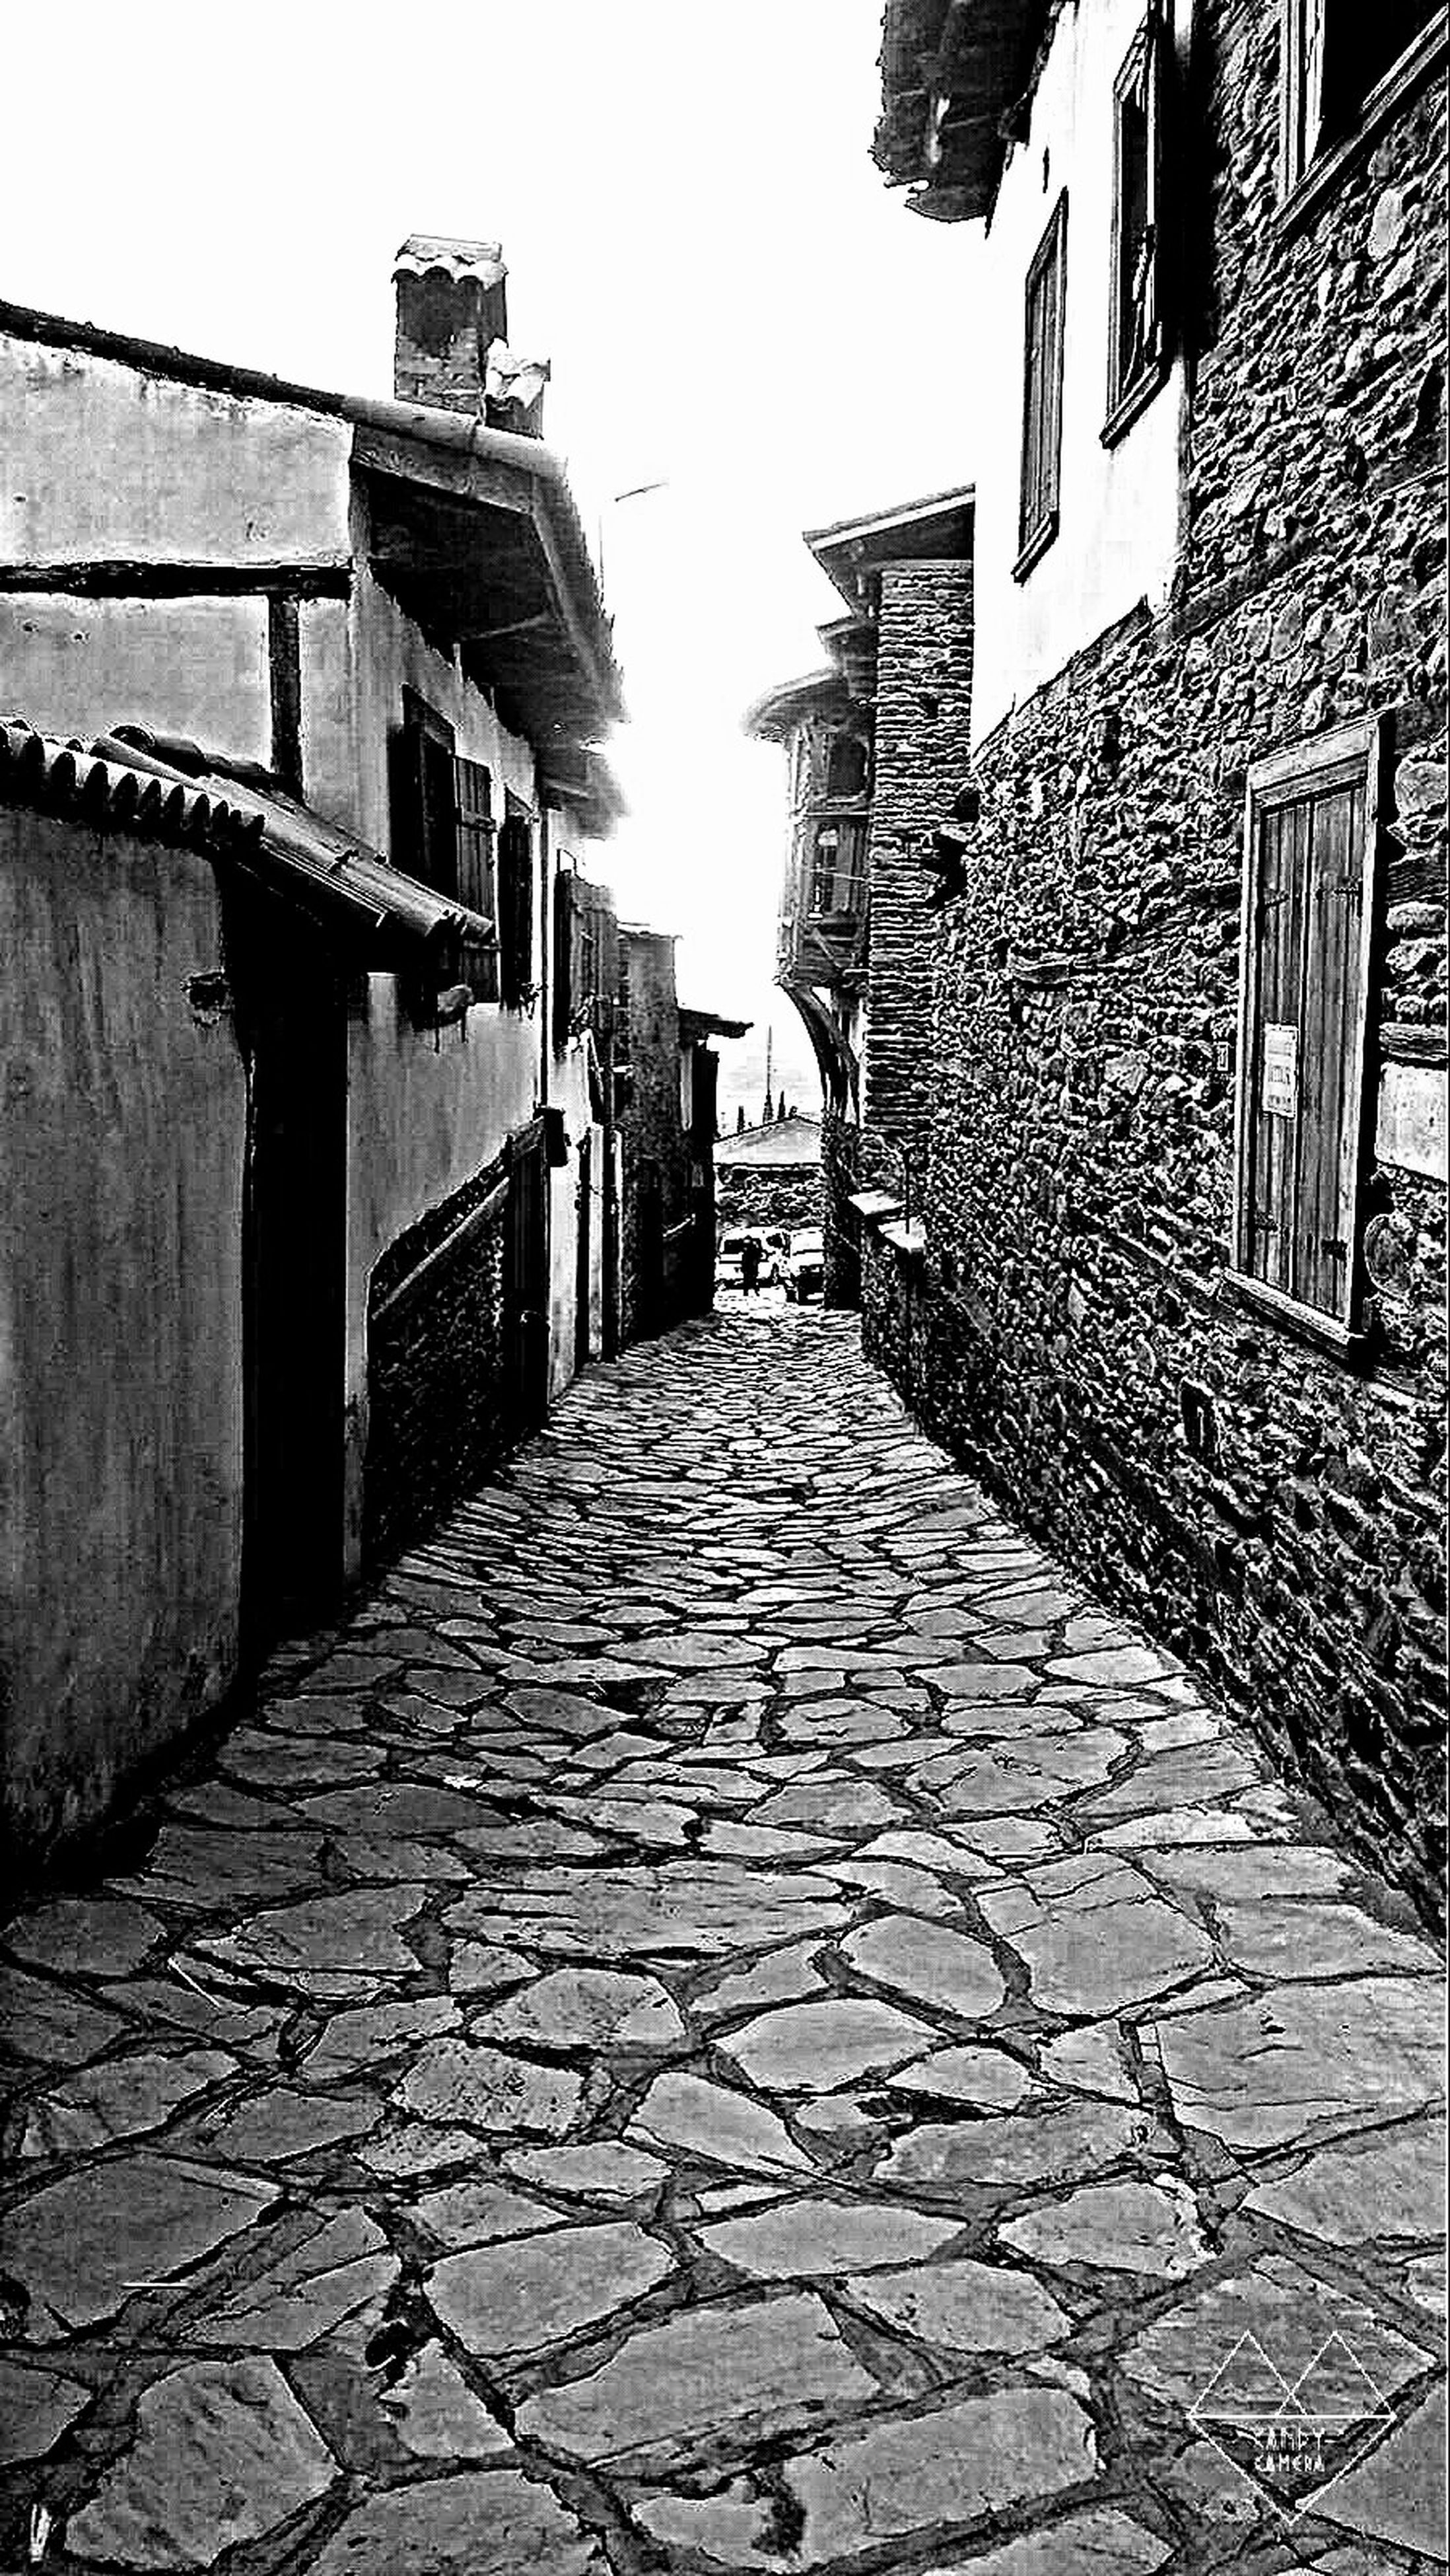 architecture, building exterior, built structure, the way forward, cobblestone, diminishing perspective, residential building, building, residential structure, alley, city, walkway, narrow, vanishing point, street, footpath, house, pathway, paving stone, clear sky